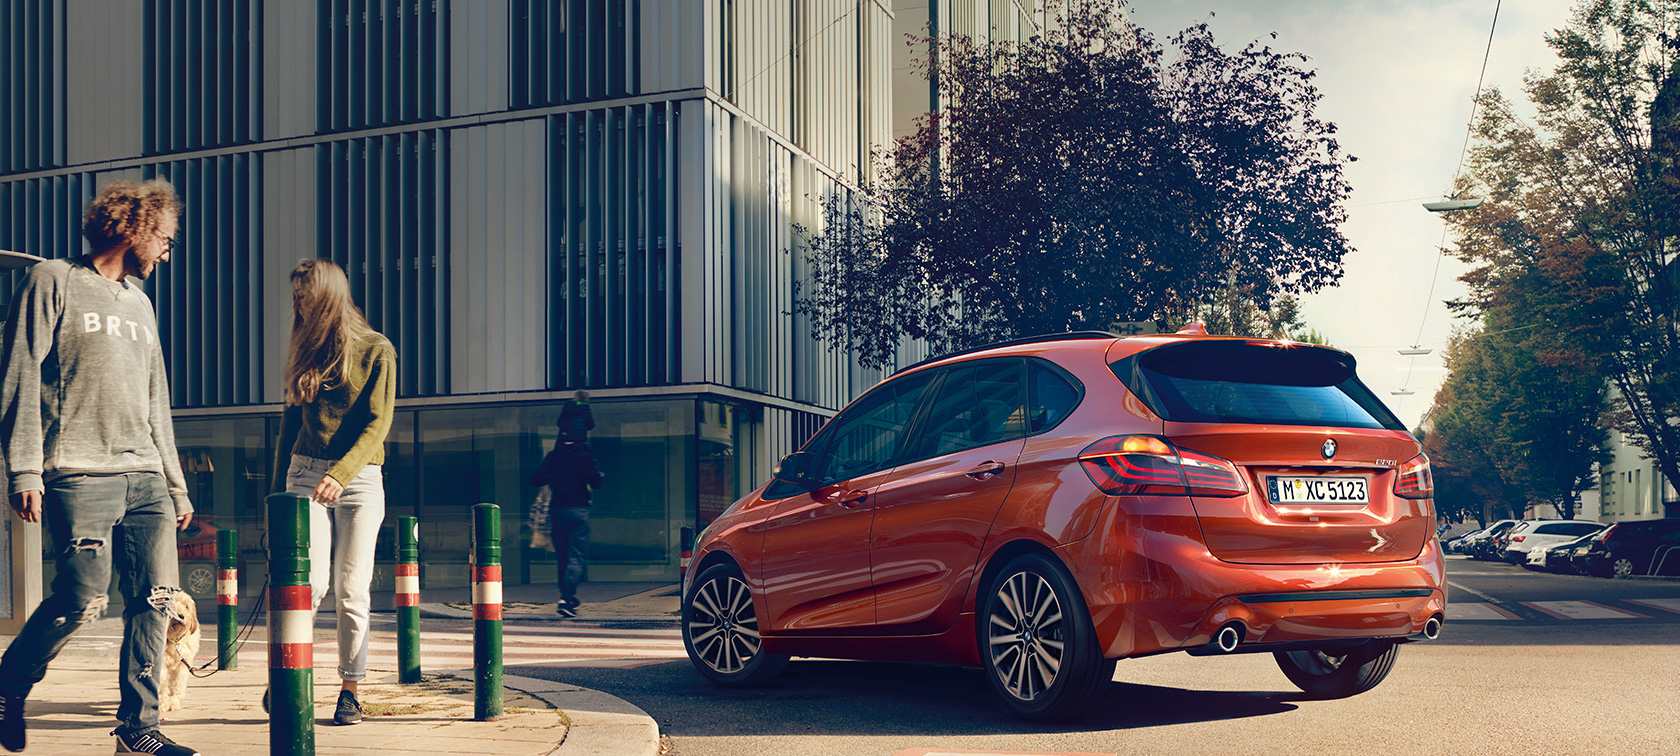 BMW 2er Active Tourer 220i F45 Facelift 2018 Sunset Orange metallic Dreiviertel-Heckansicht fahrend auf Strasse